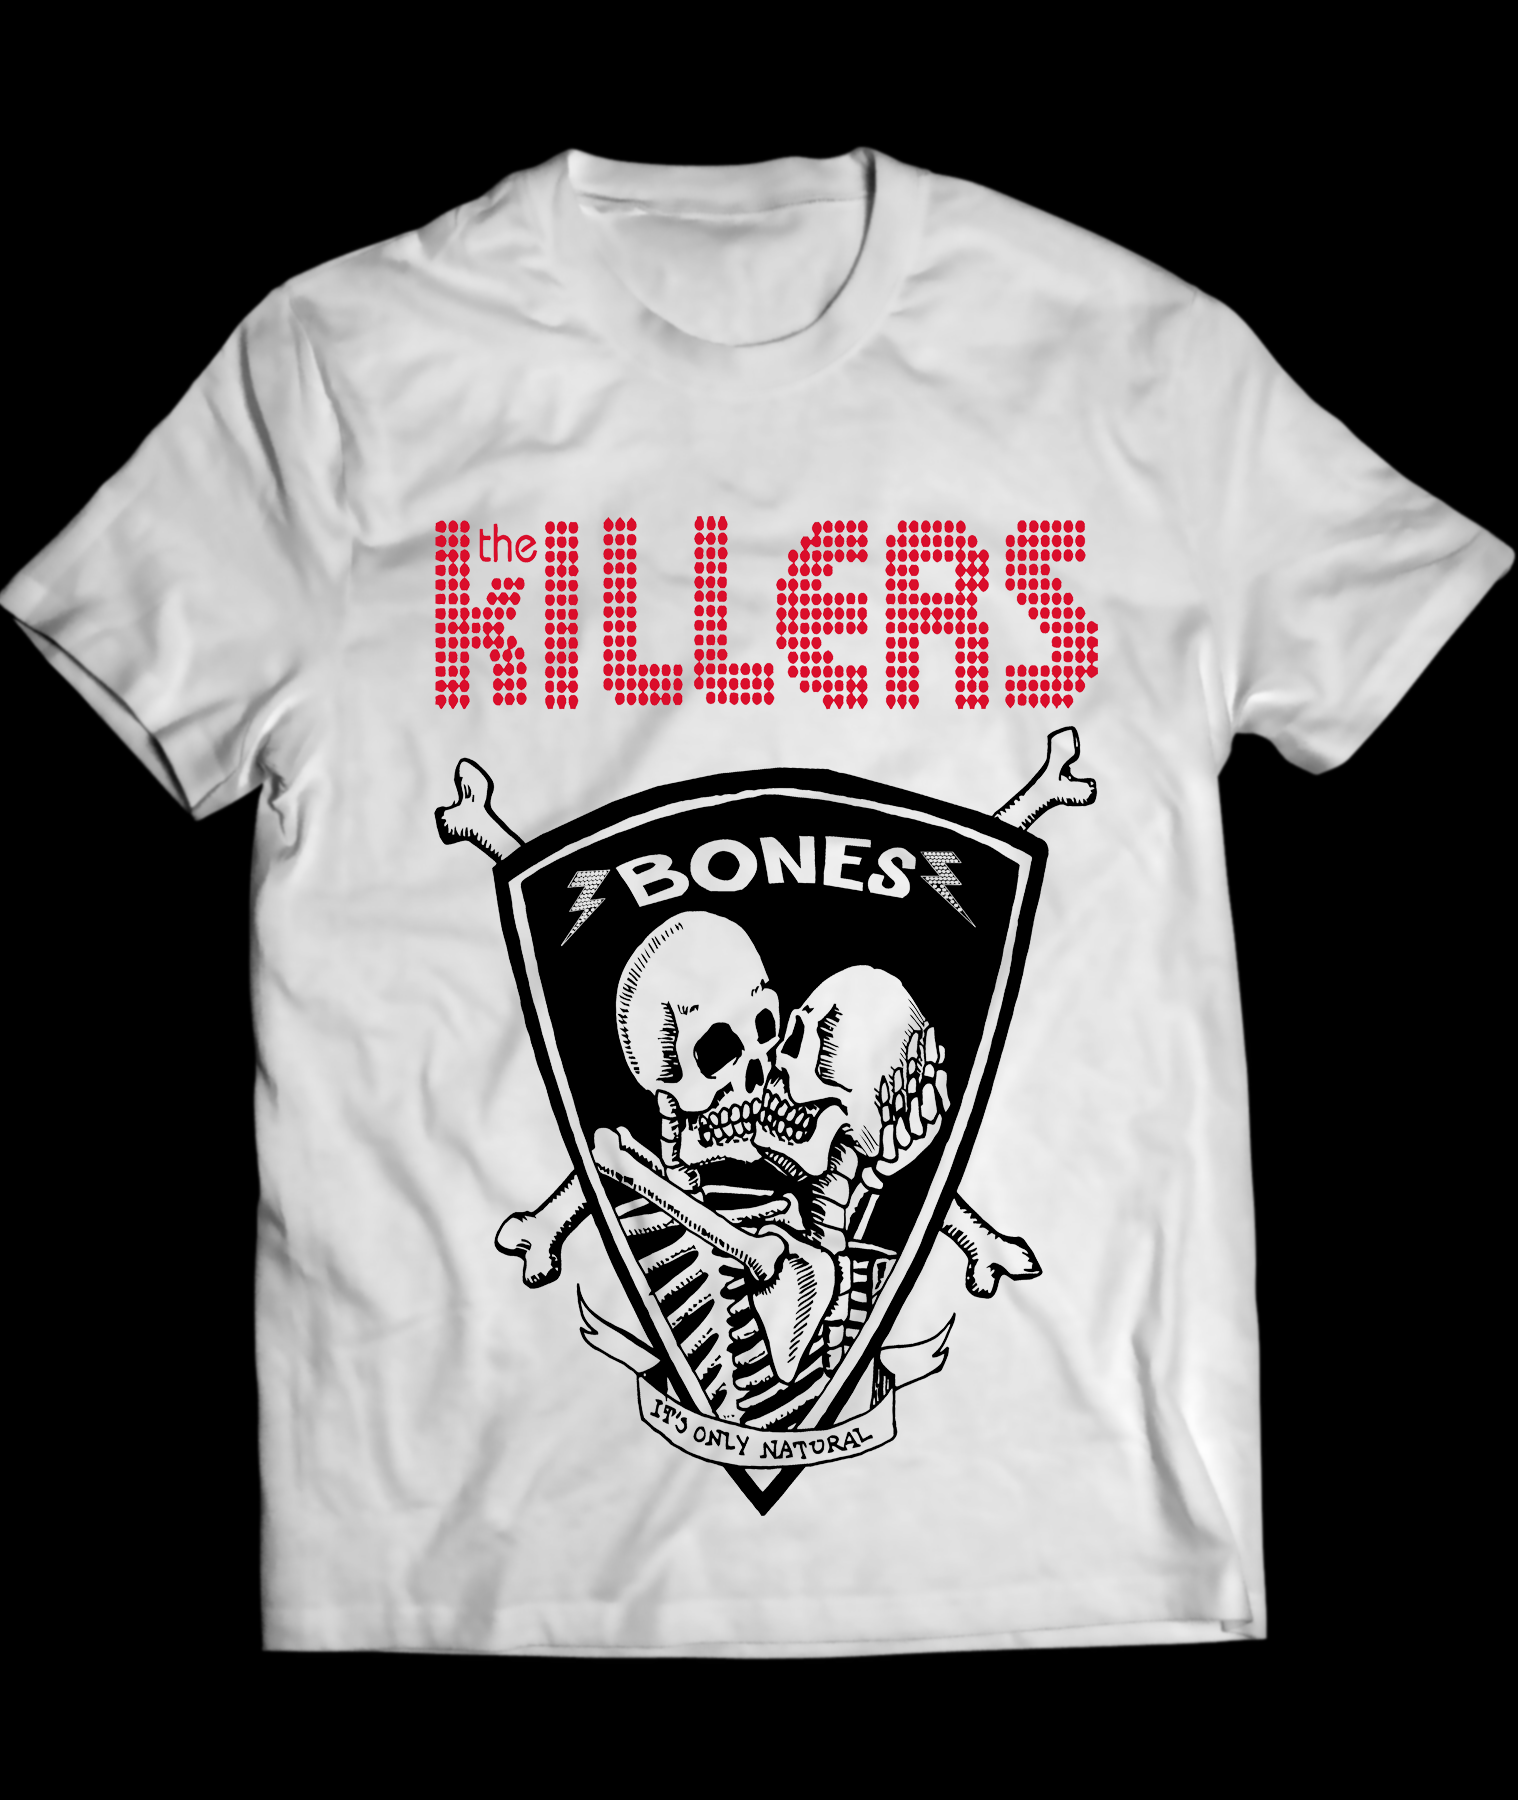 d6bed986661d6 Camisetas. Início   The Killers   The Killers